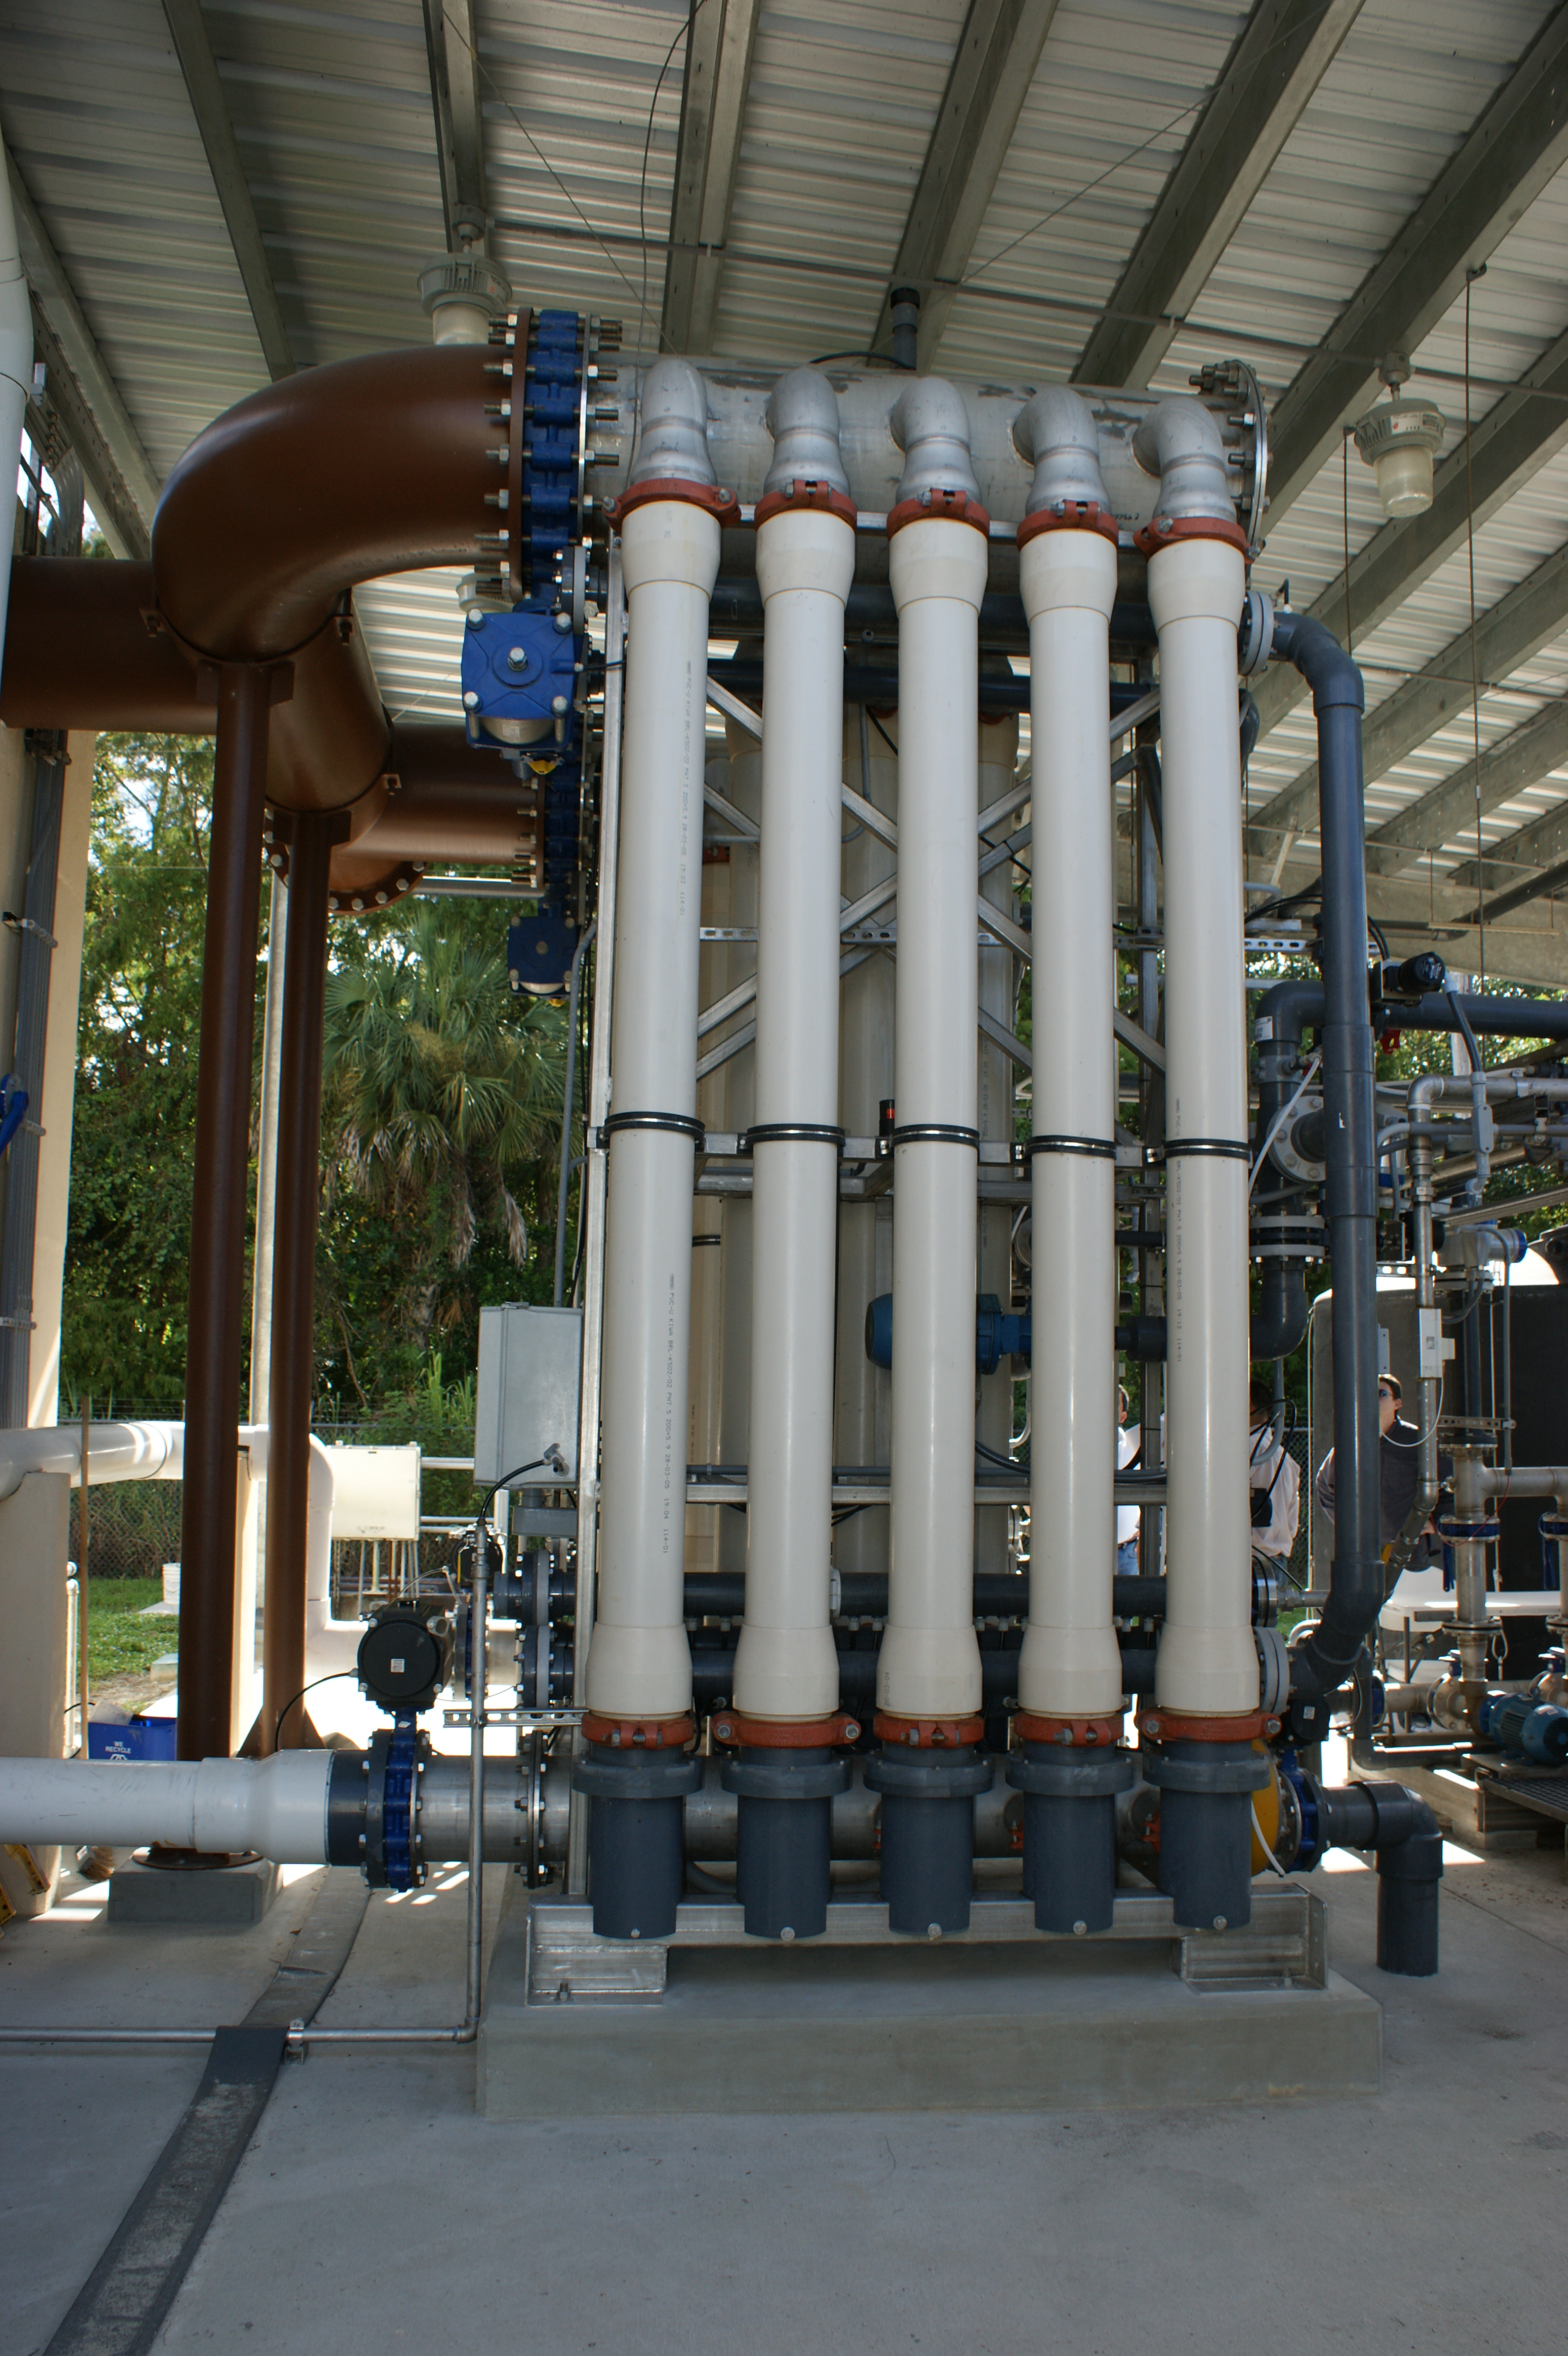 Last but Not Least: The Tertiary Stage for Wastewater Treatment